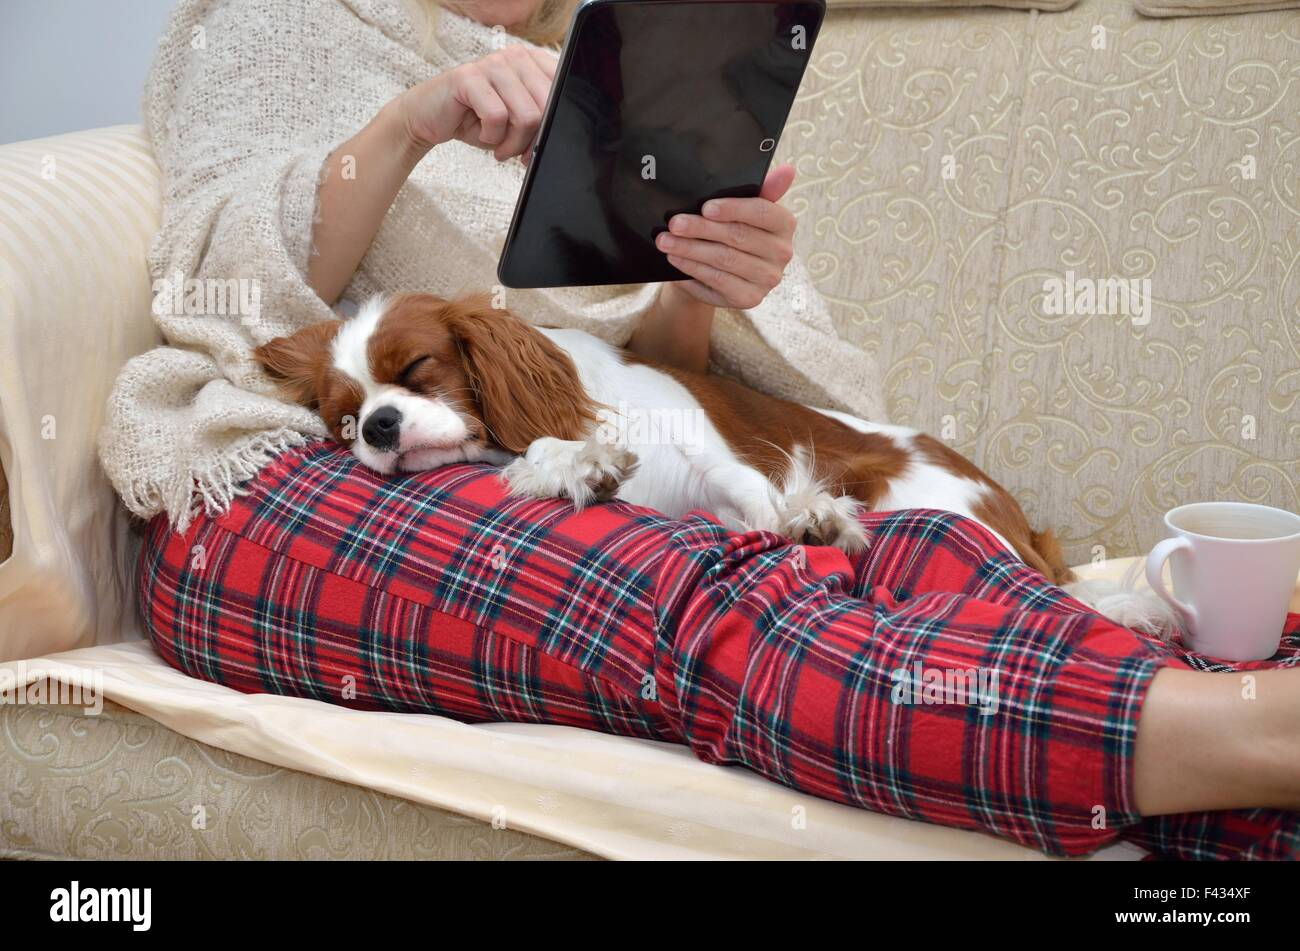 Woman in cozy home wear relaxing on sofa with a sleeping cavalier dog on her lap, holding tablet and reading - Stock Image